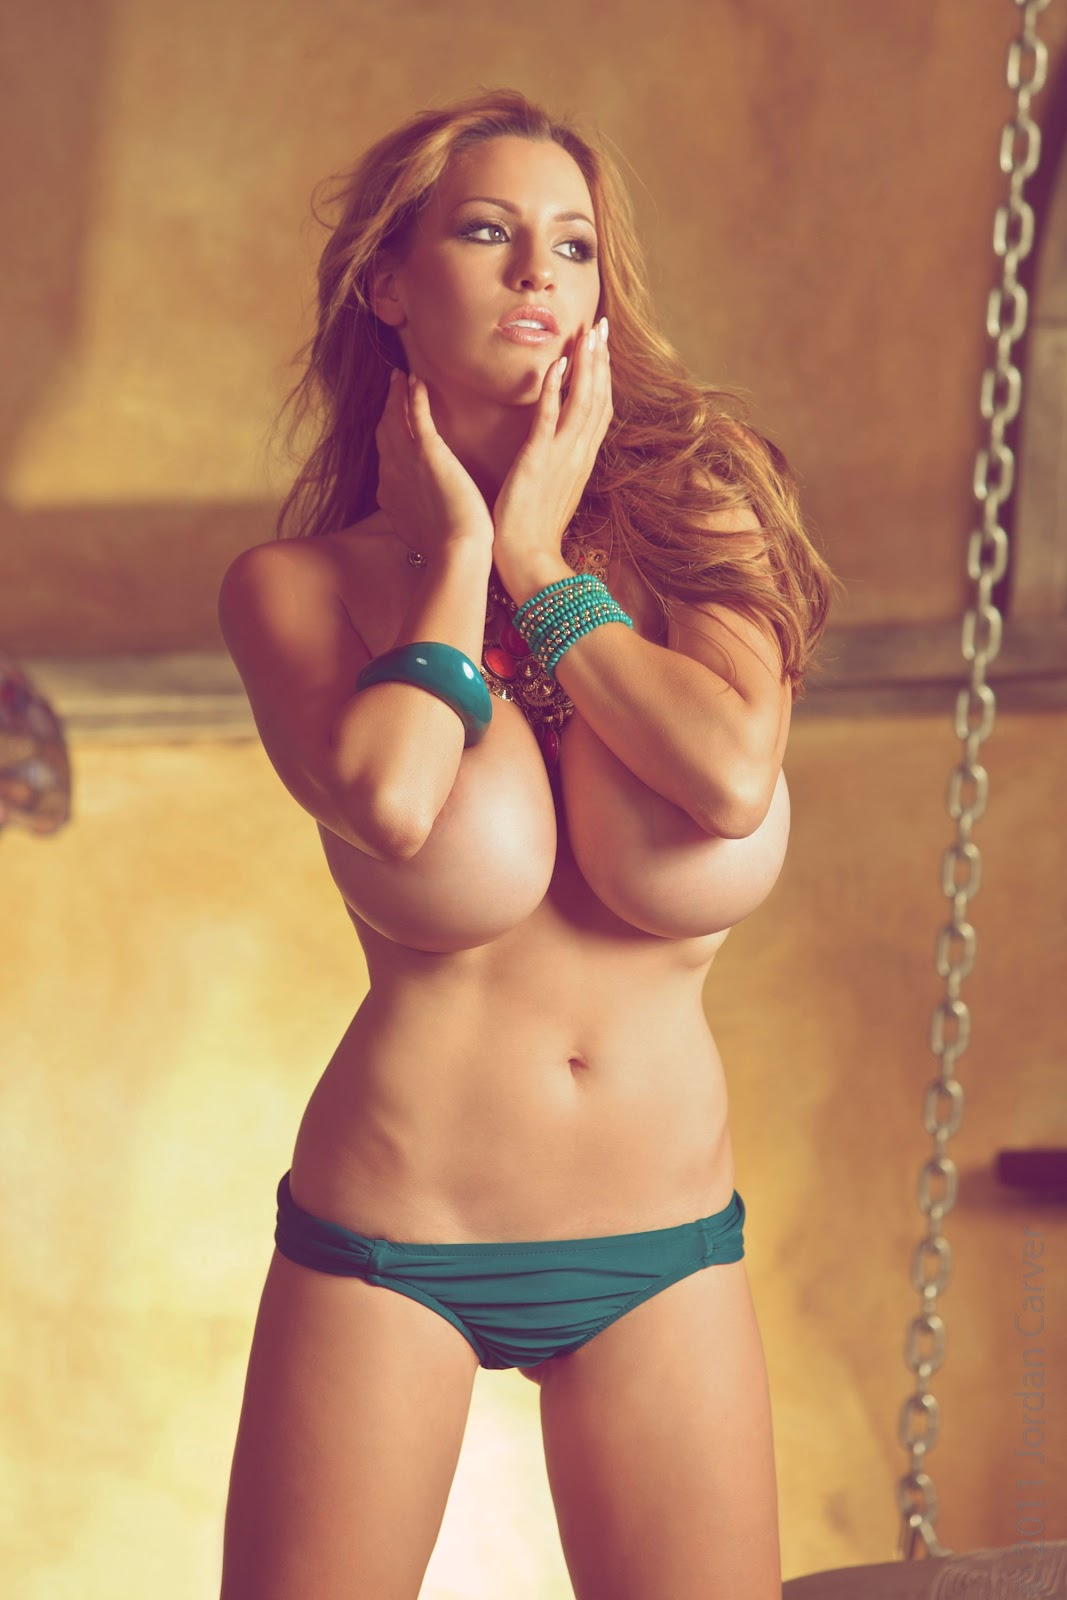 Remarkable, this jordan carver porn sex something